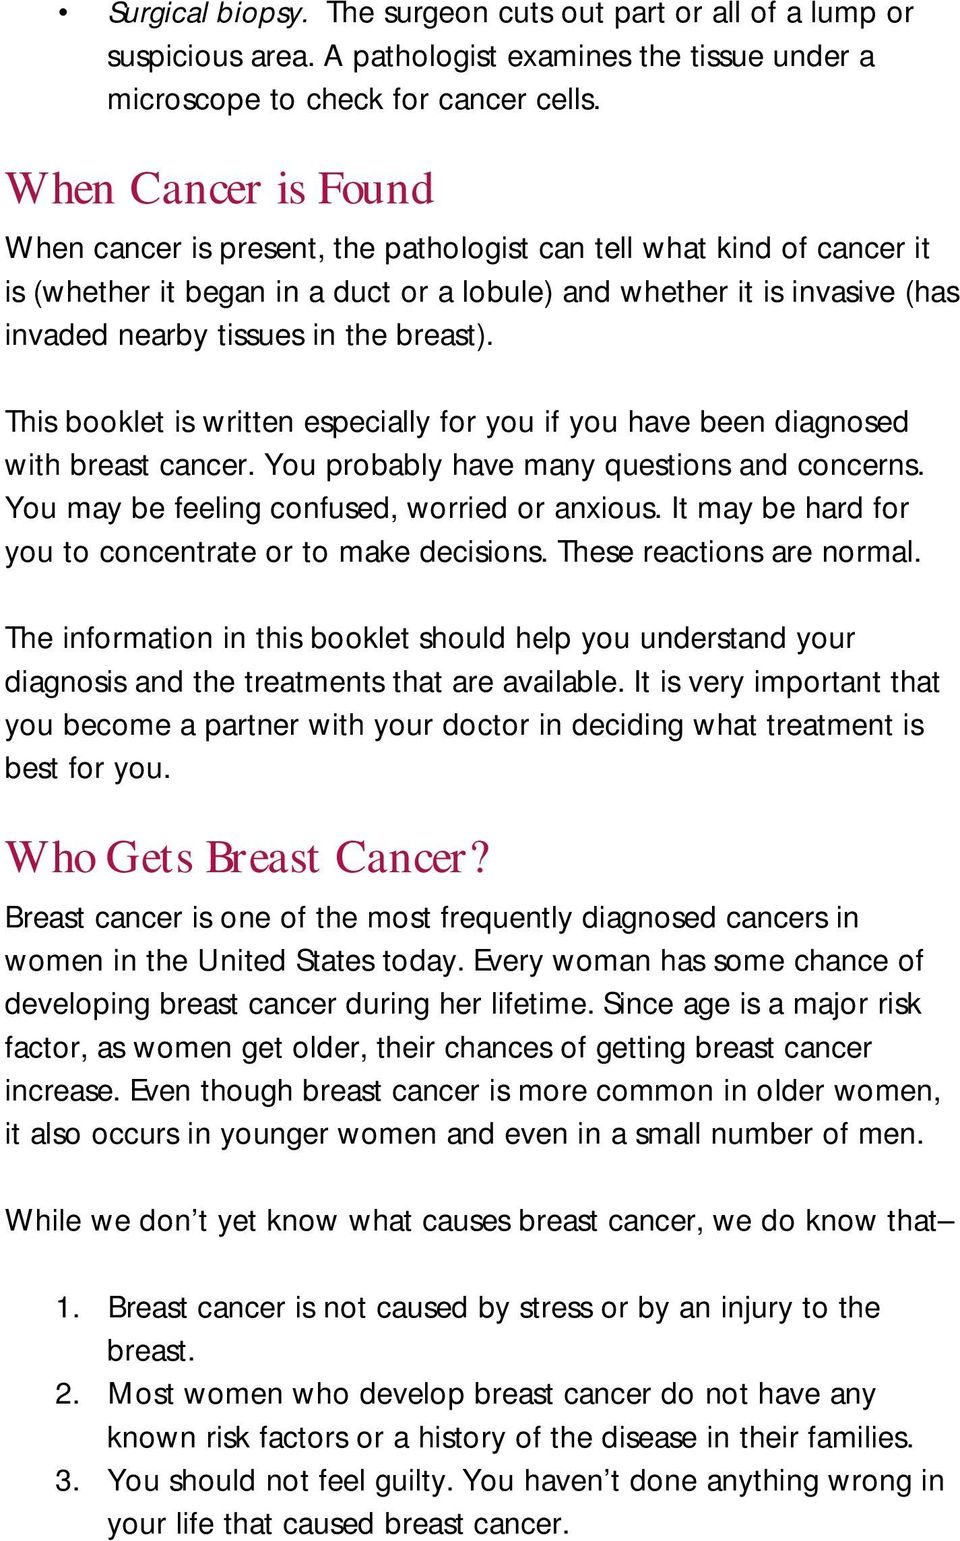 breast). This booklet is written especially for you if you have been diagnosed with breast cancer. You probably have many questions and concerns. You may be feeling confused, worried or anxious.